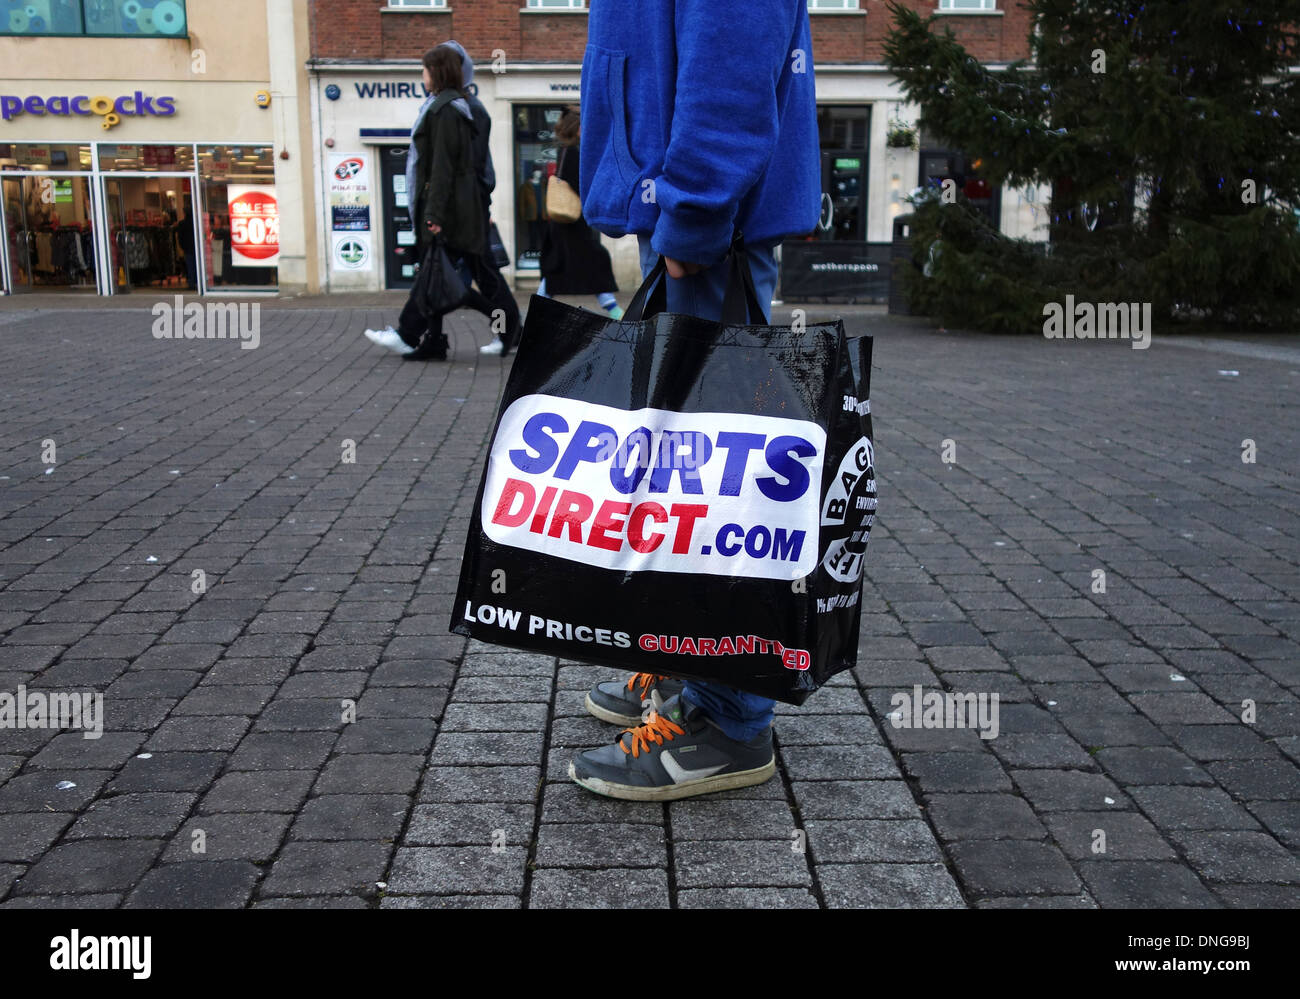 6fc53a332afe a customer carrying a sports direct shopping bag Stock Photo ...